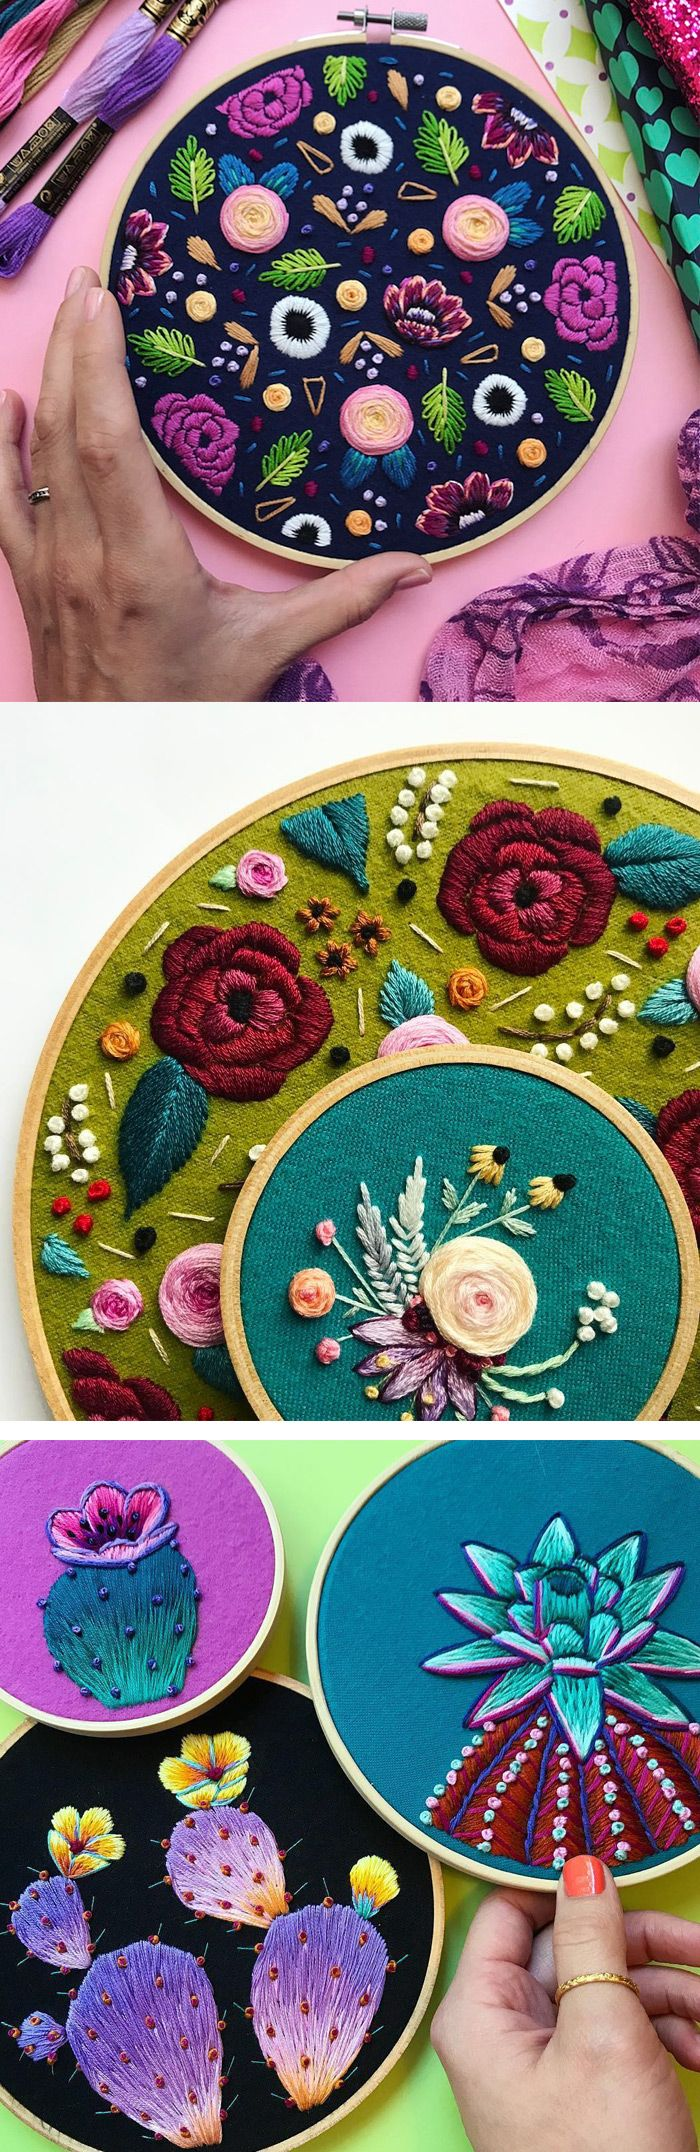 Embroidery by Marable Lake // hoop art // cactus embroidery